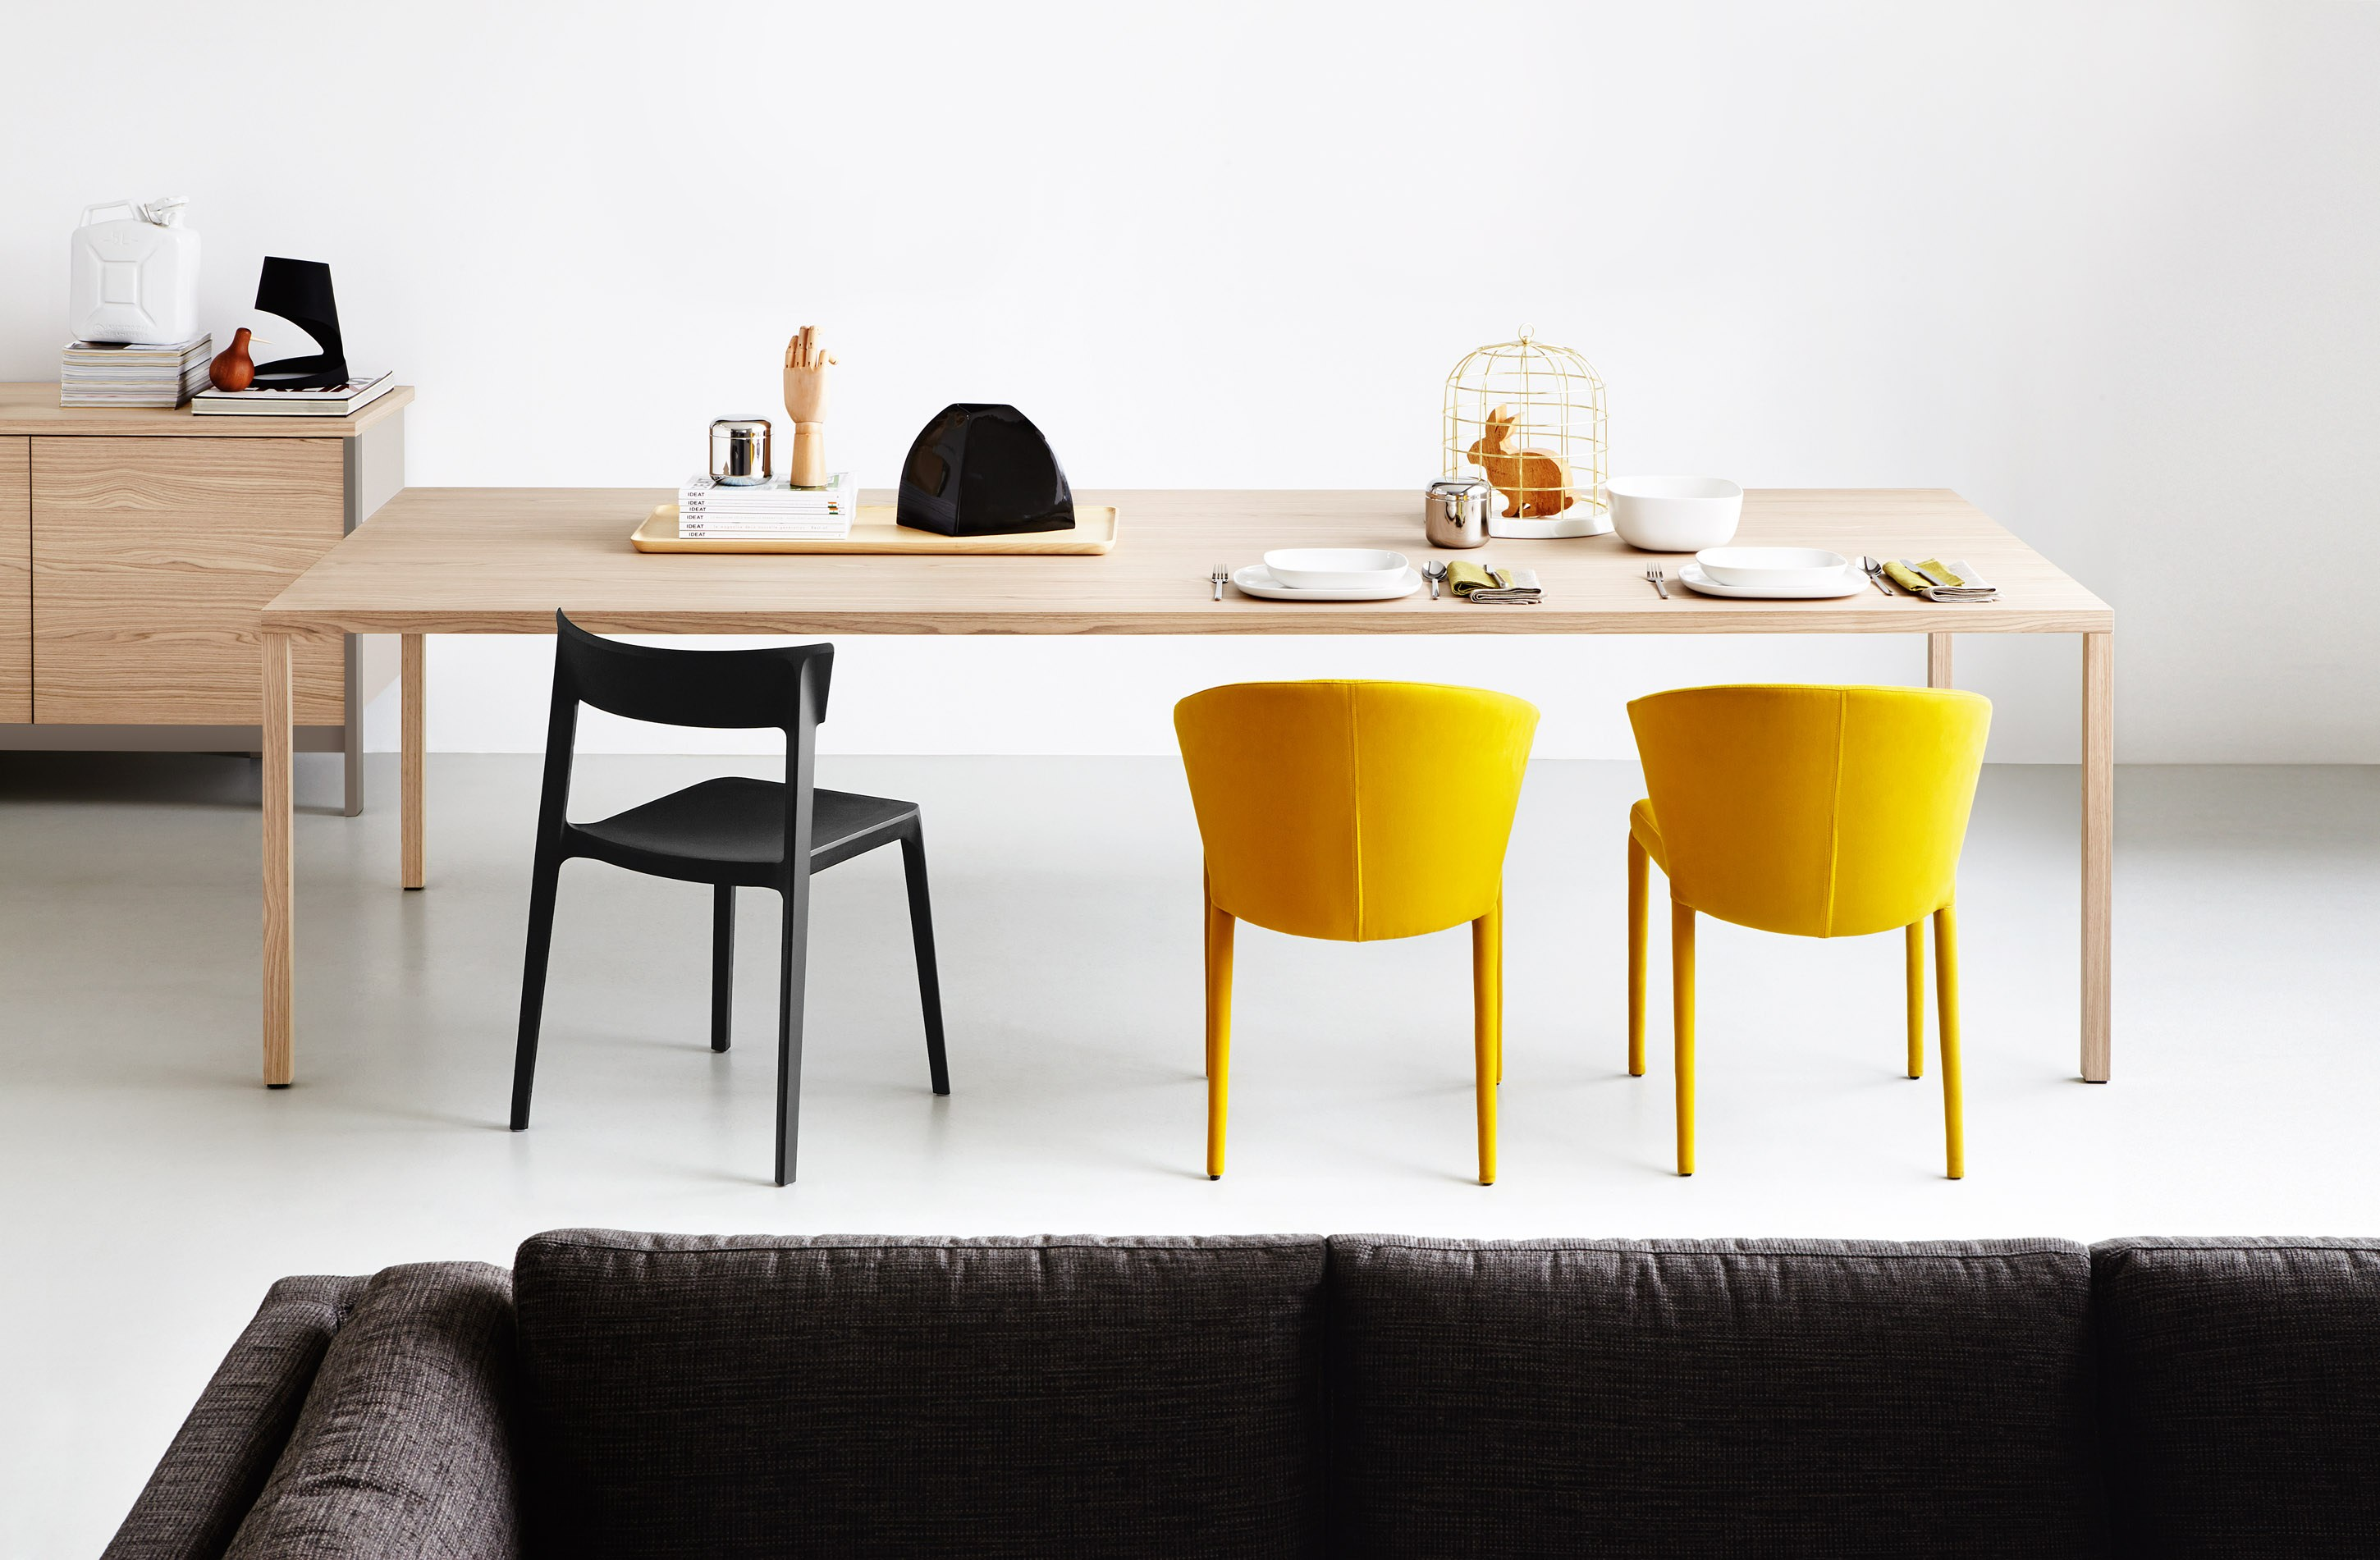 Calligaris dining tables: pros and cons